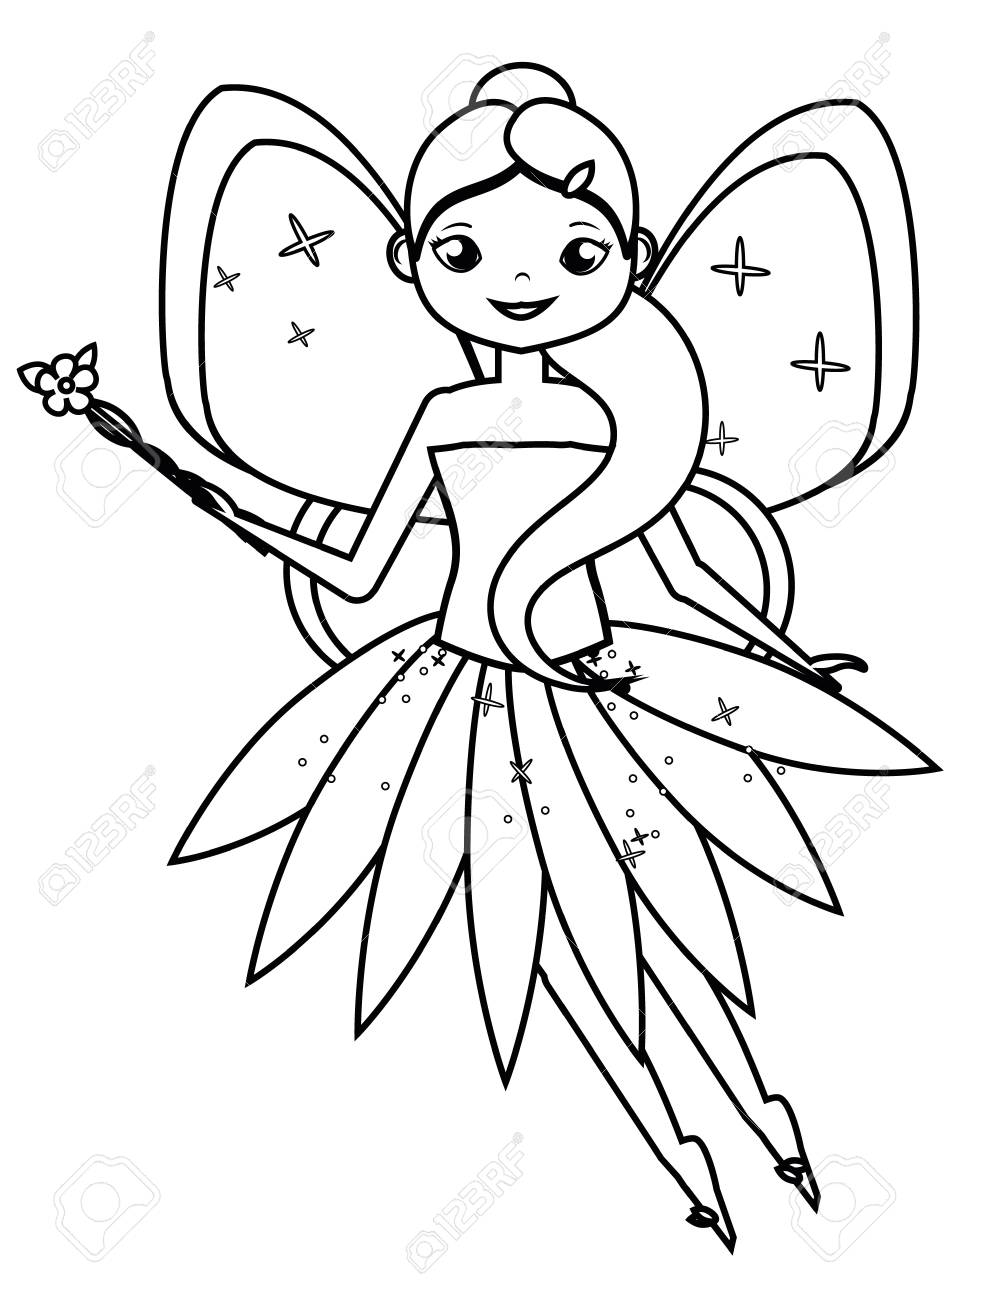 Coloring Page With Cute Flying Fairy Holding Flower Magic Wand ...